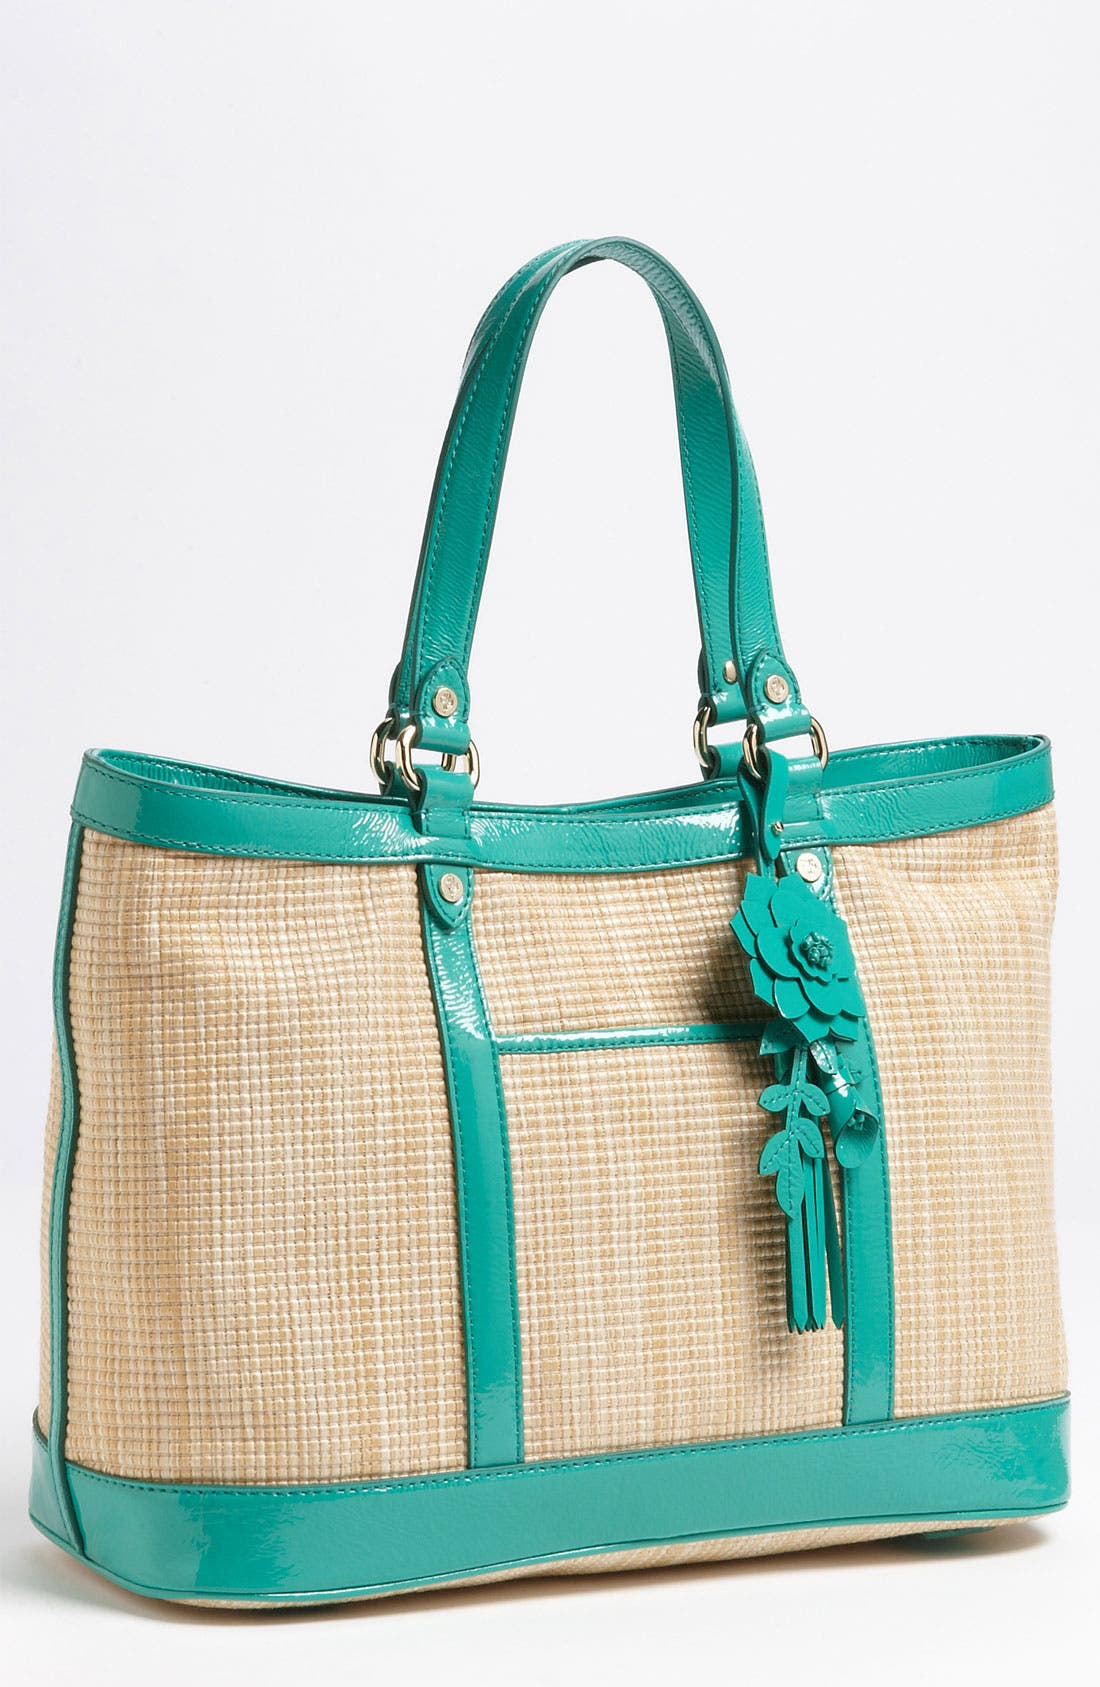 Main Image - Cole Haan 'Jitney Straw - Serena Small' Tote